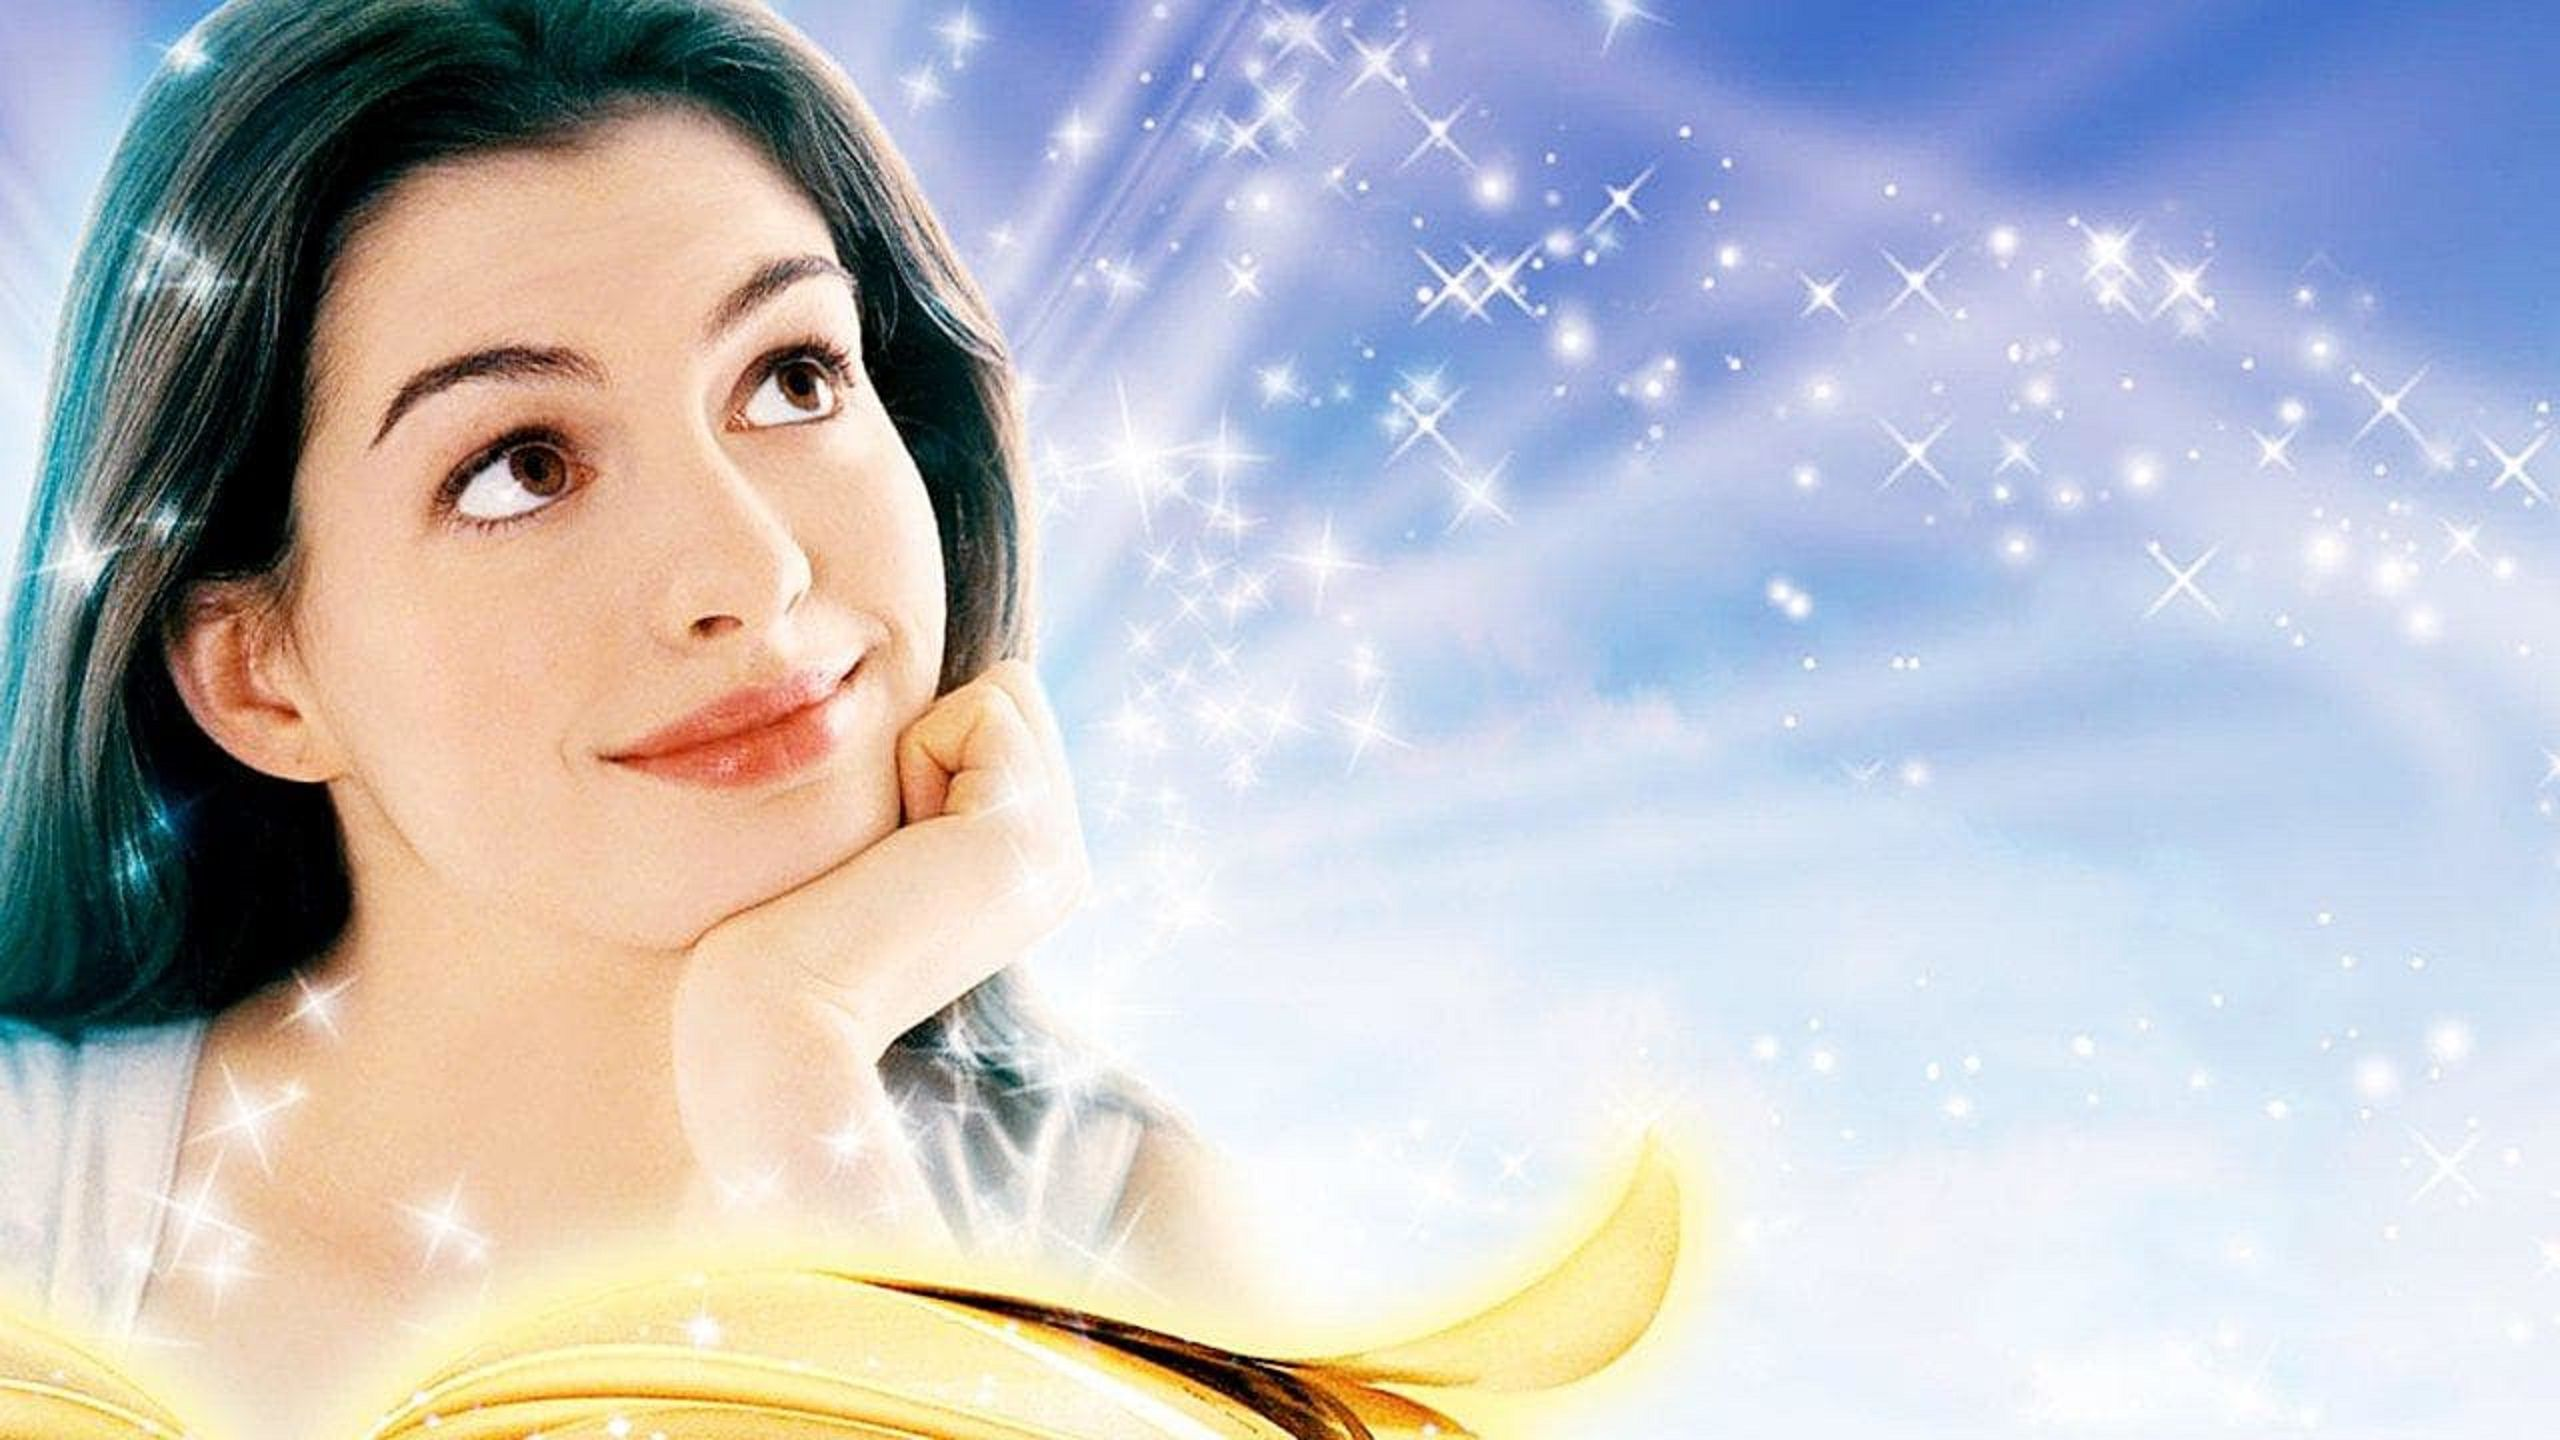 Ella Enchanted 2004 Anne Hathaway wallpapers and poster